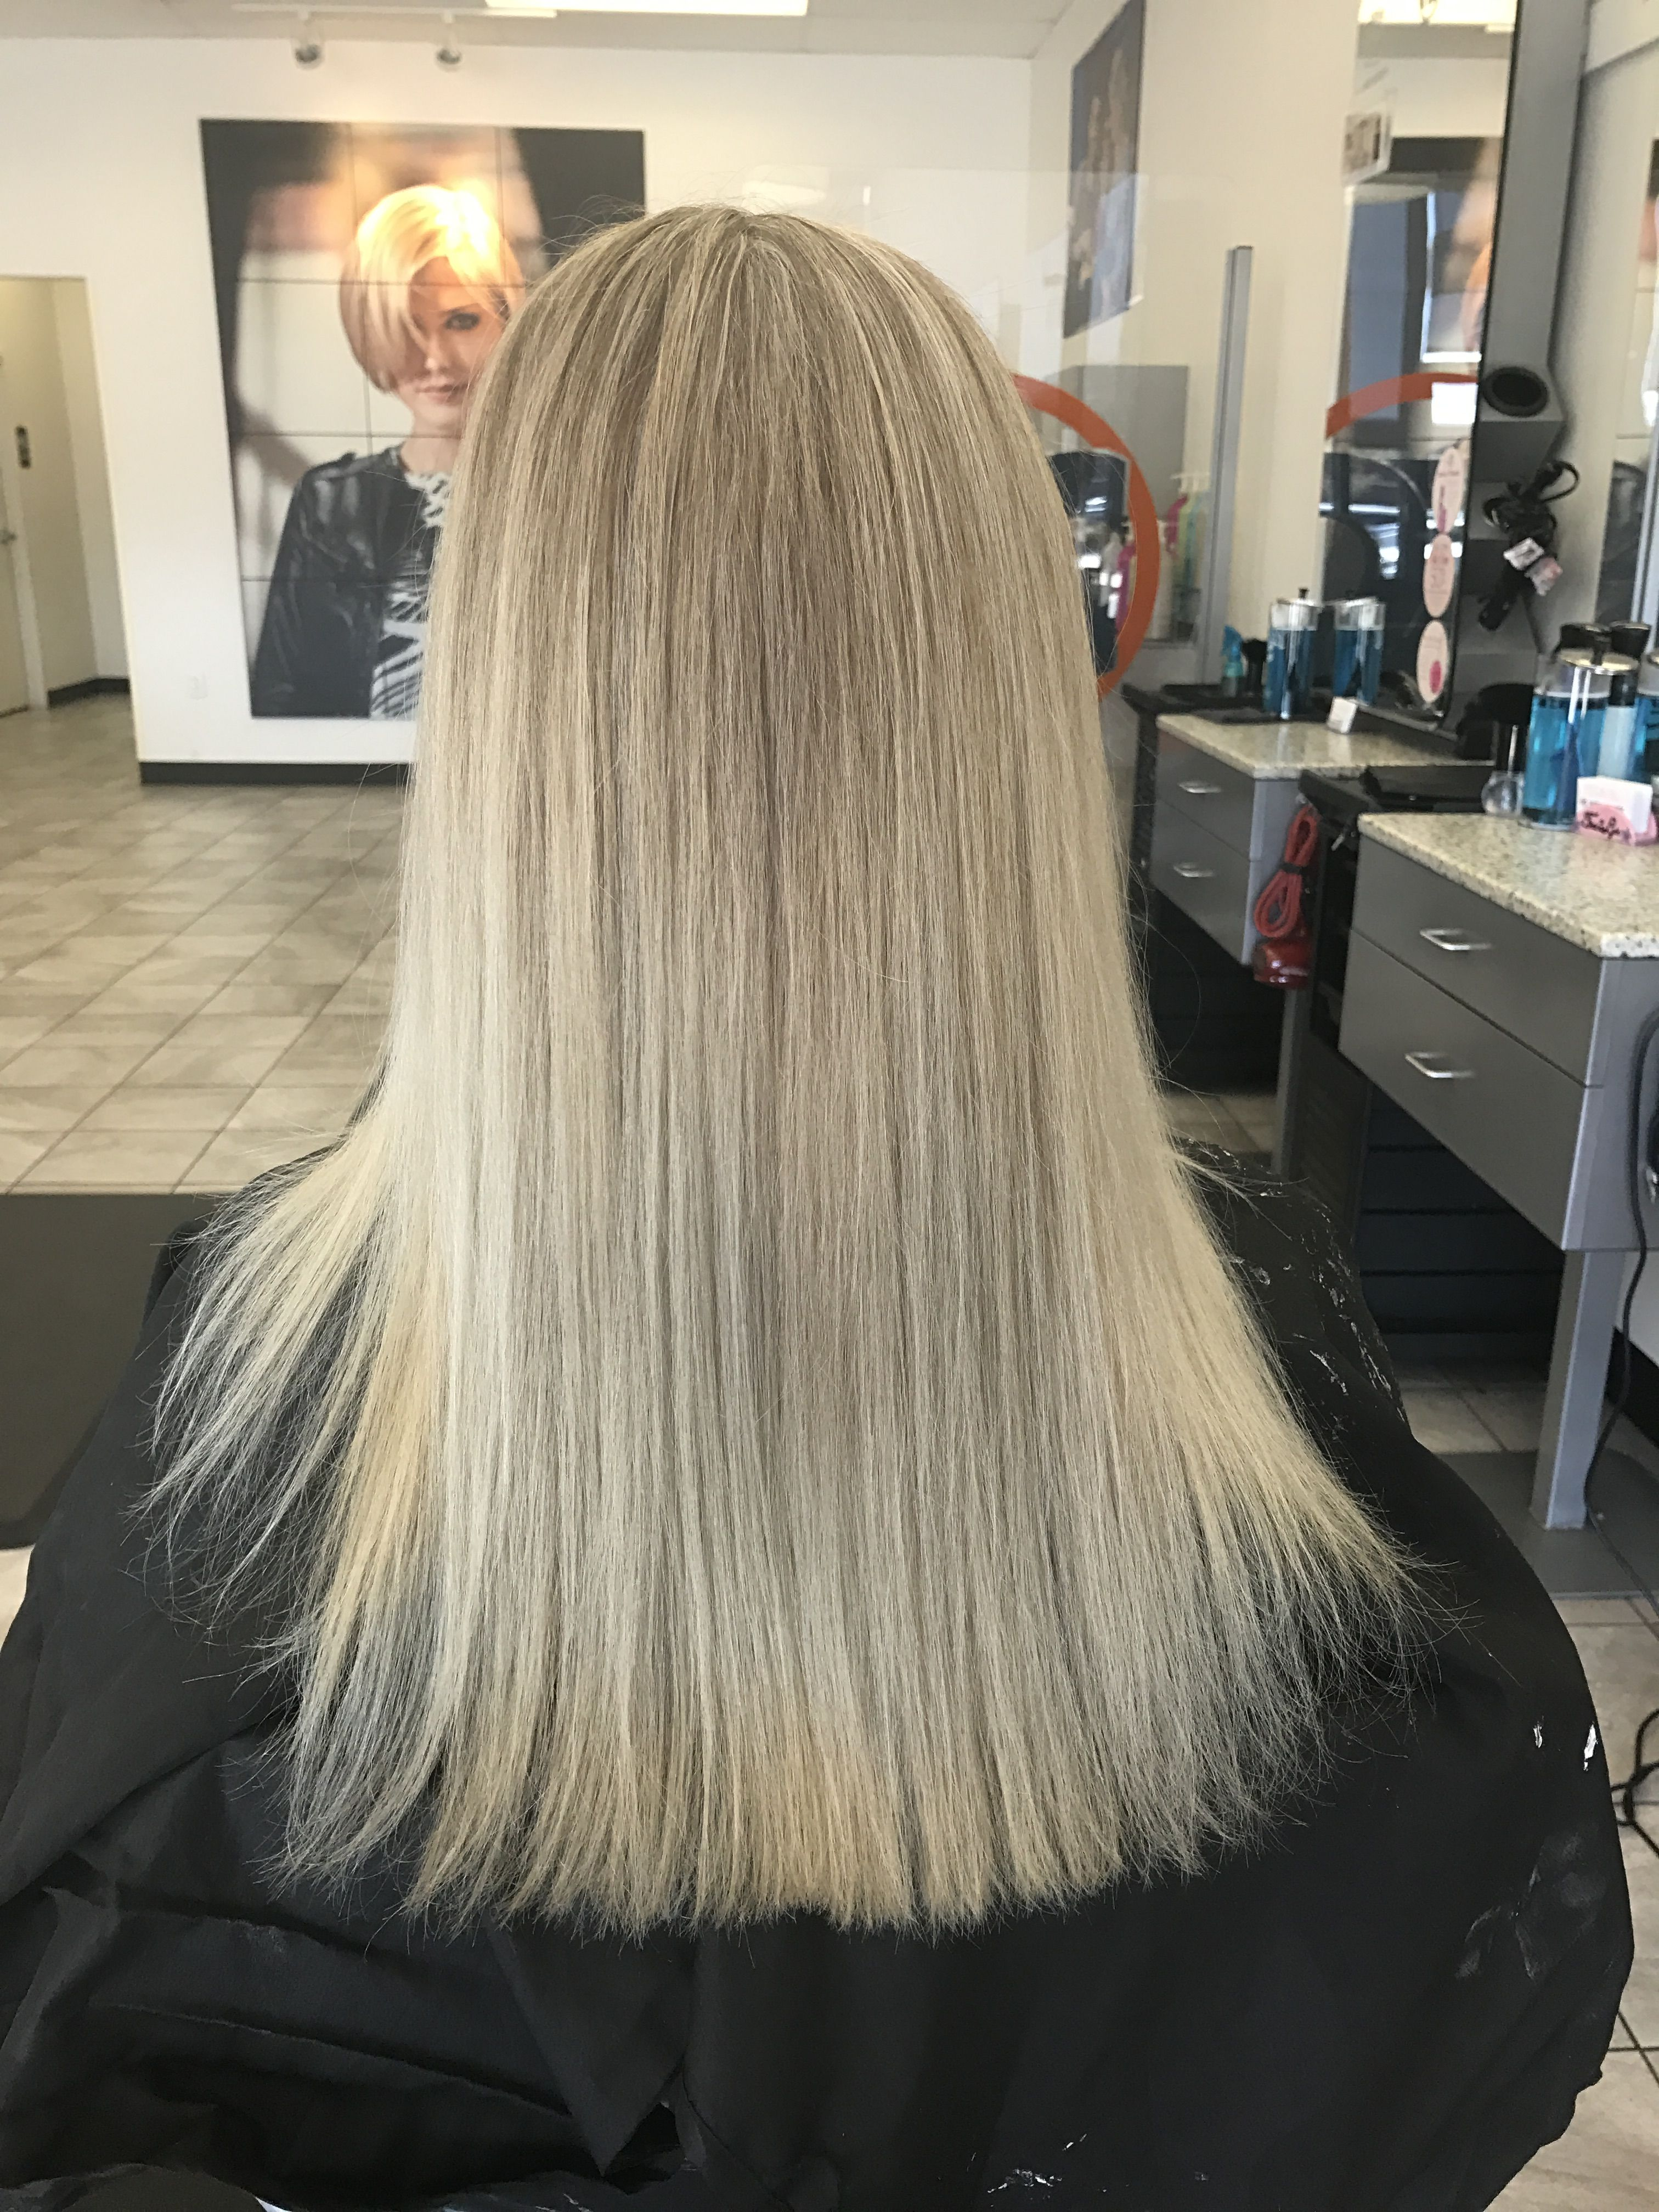 Icy Blonde Highlights Hair Cuttery Largo Mall Perfect Hair Salon Icy Blonde Highlights Hair Highlights